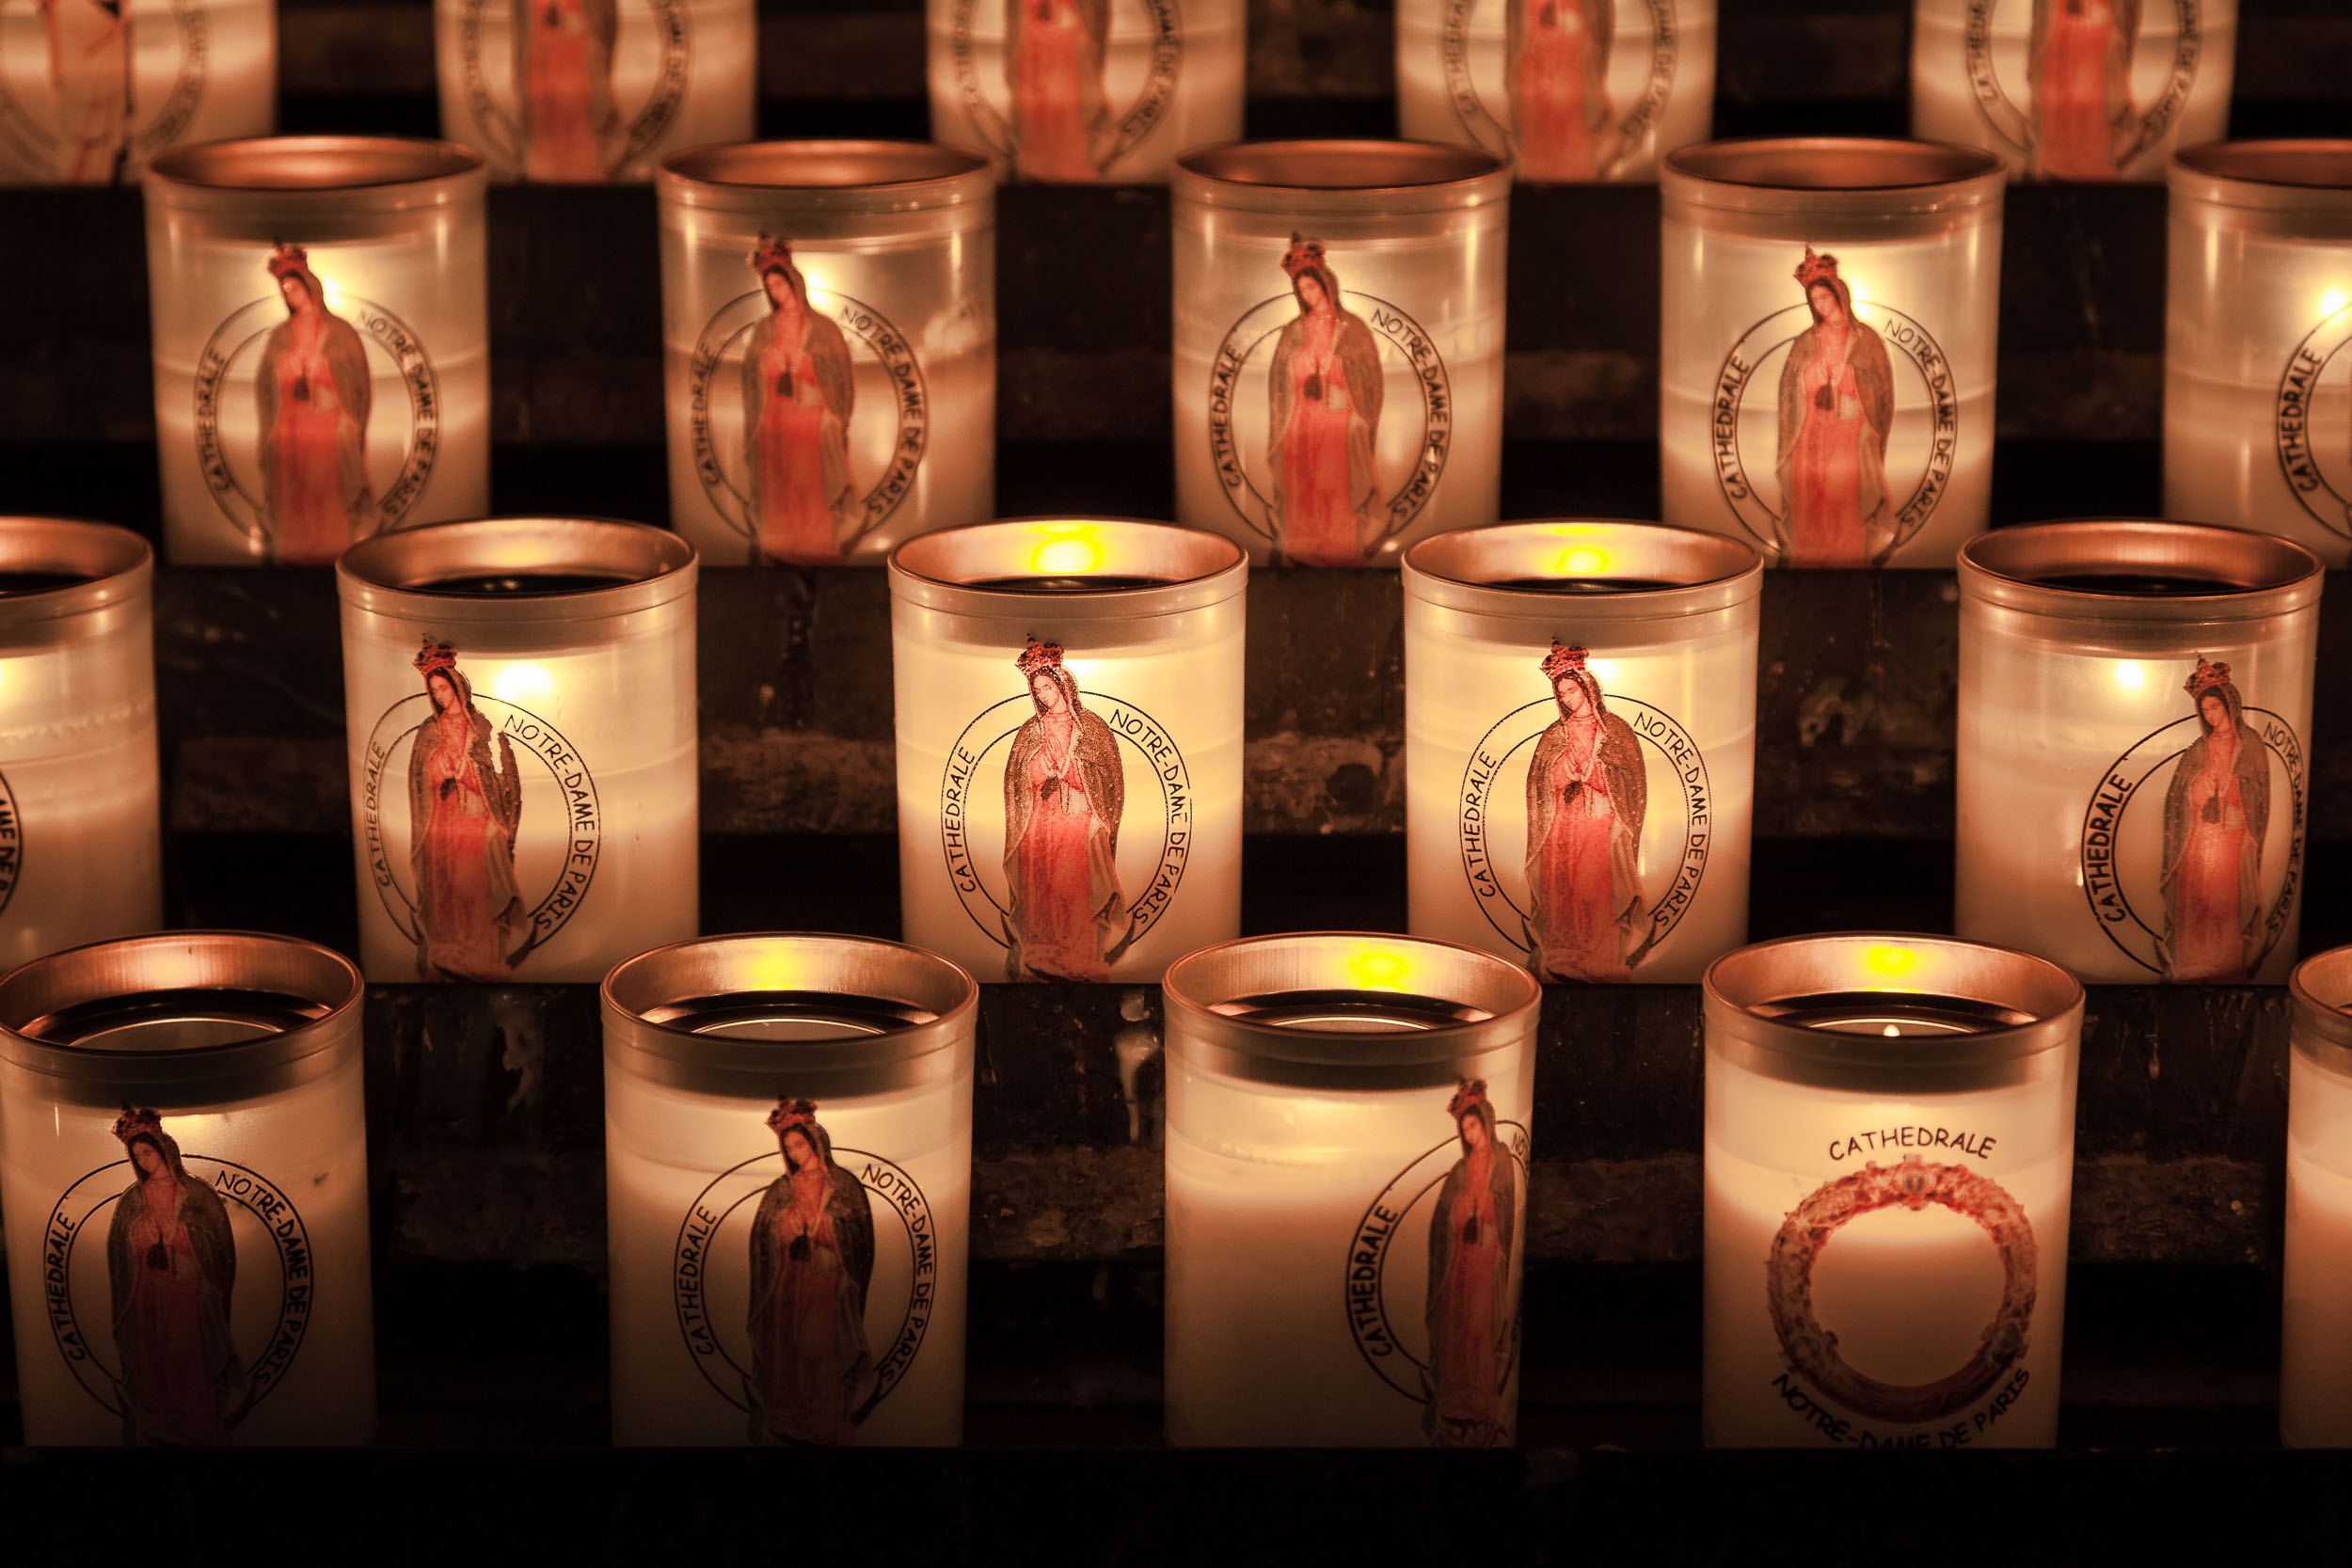 A close up view of  candles , featuring the  Virgin Mary , inside the  Notre Dame Cathedral  in Paris, France with a more  antique rendering of color .